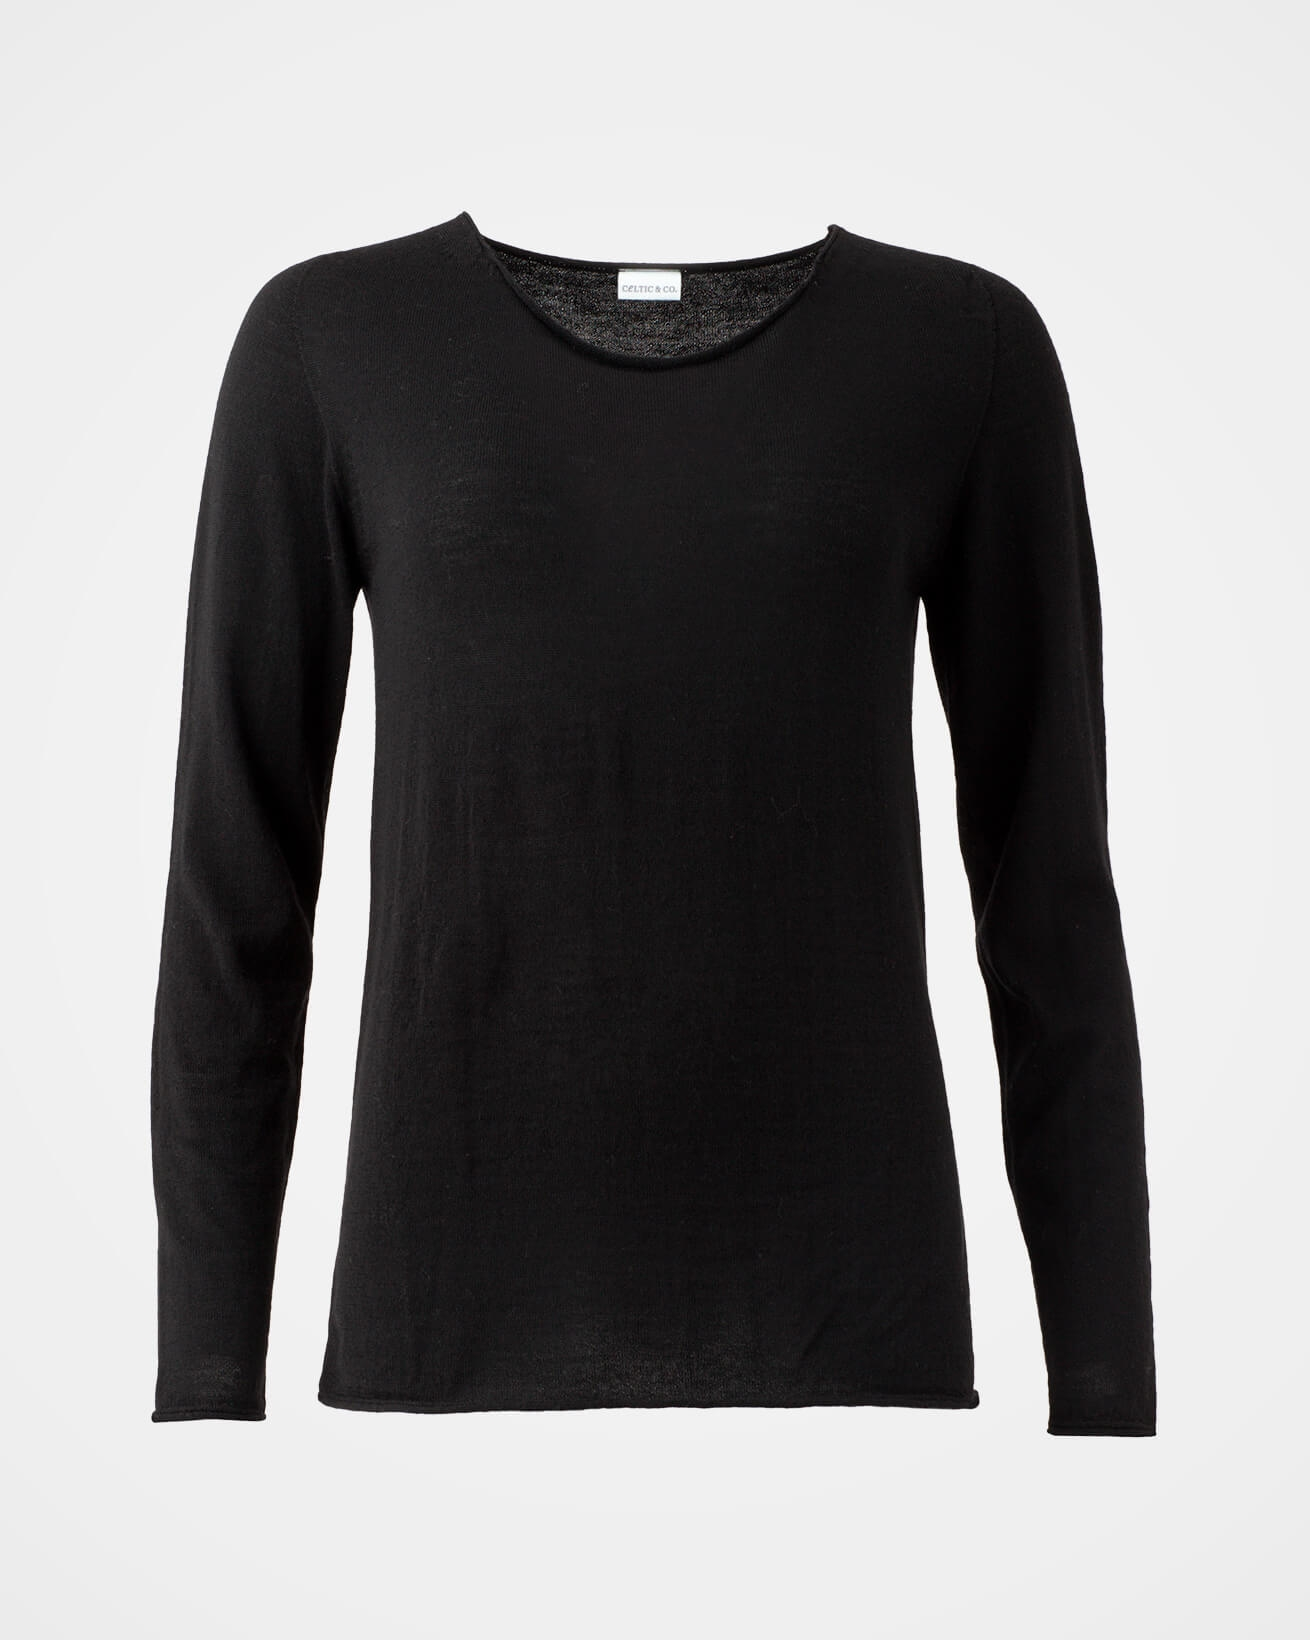 Fine Knit Merino Crew Neck - Small - Black - 1245